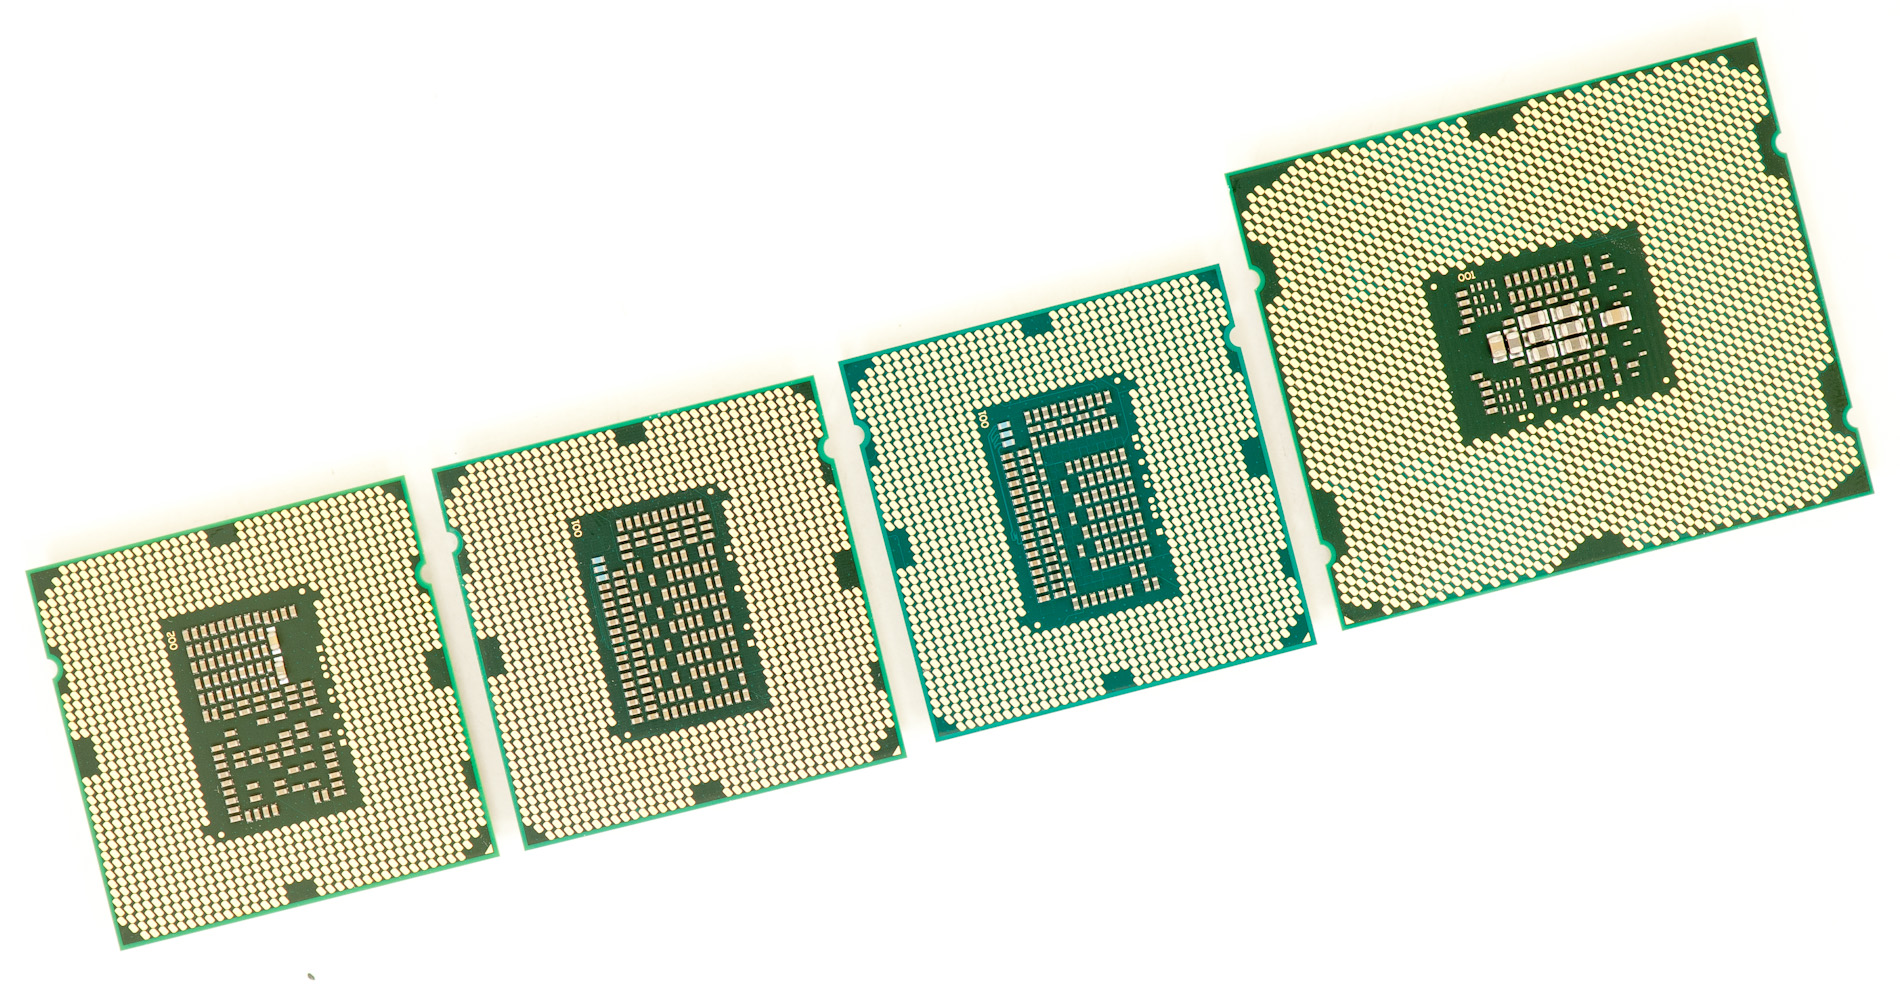 The Lineup: Quad-Core Only for Now - The Intel Ivy Bridge